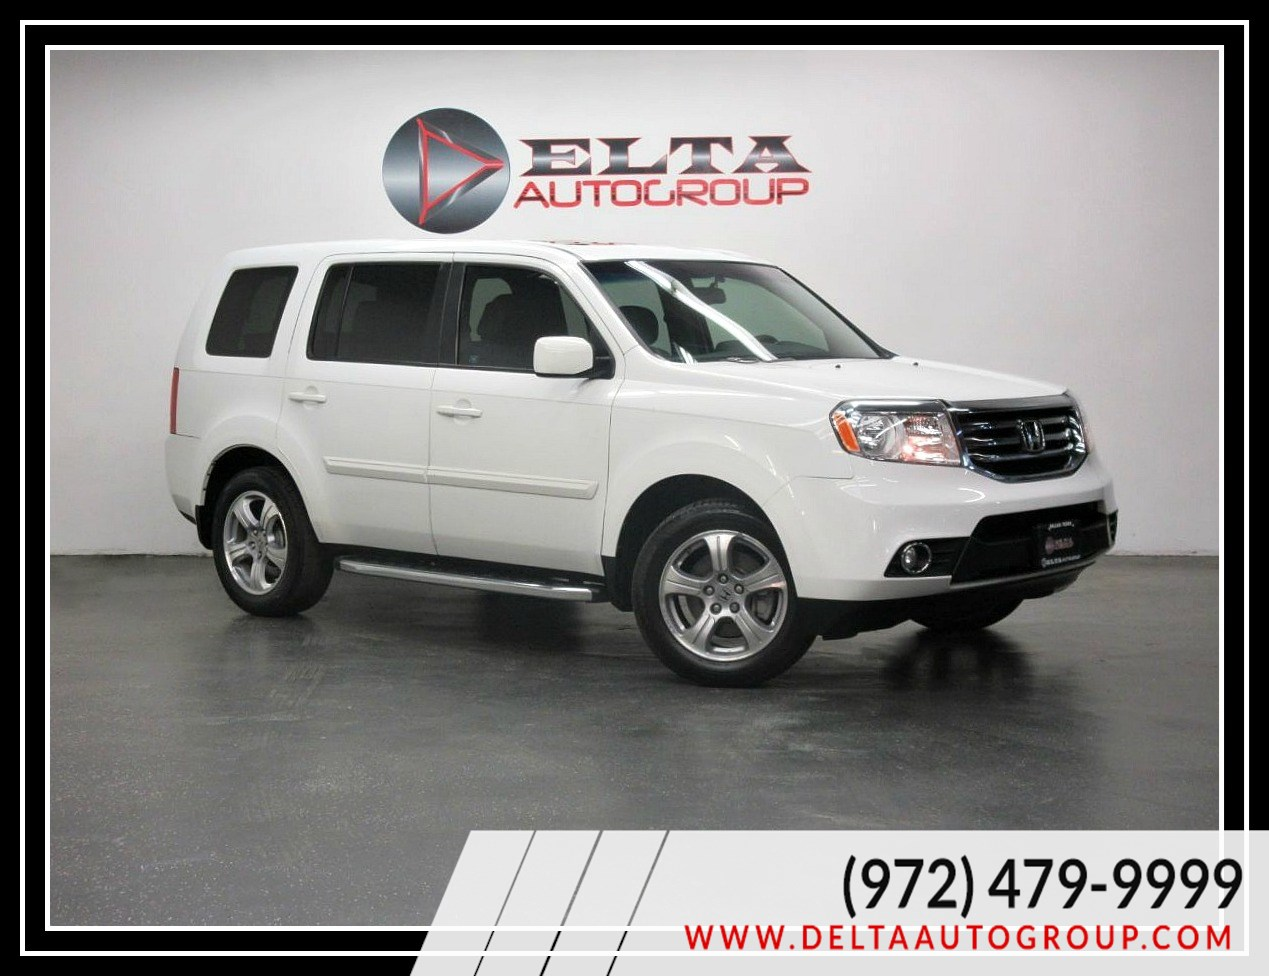 2012 Honda Pilot EX-L CAMERA LEATHER ROOF 3RD 1 OWNER